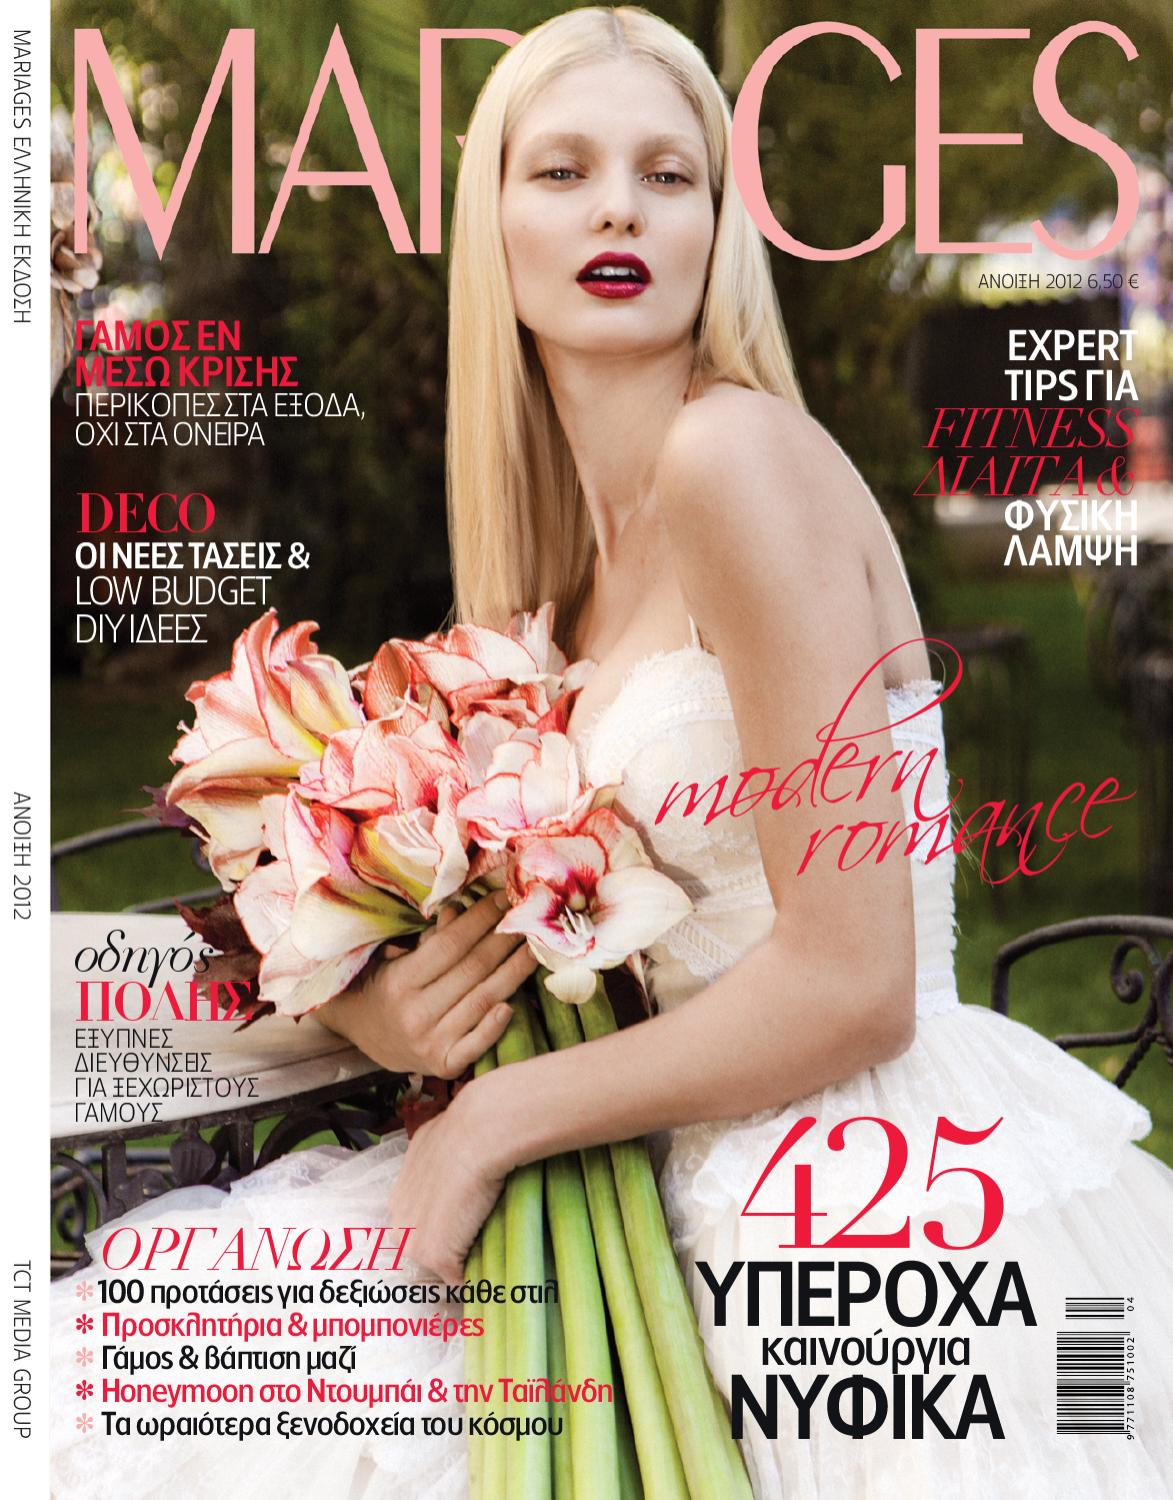 13b2d1037da Mariages Άνοιξη 2012 by TCT MEDIA - issuu